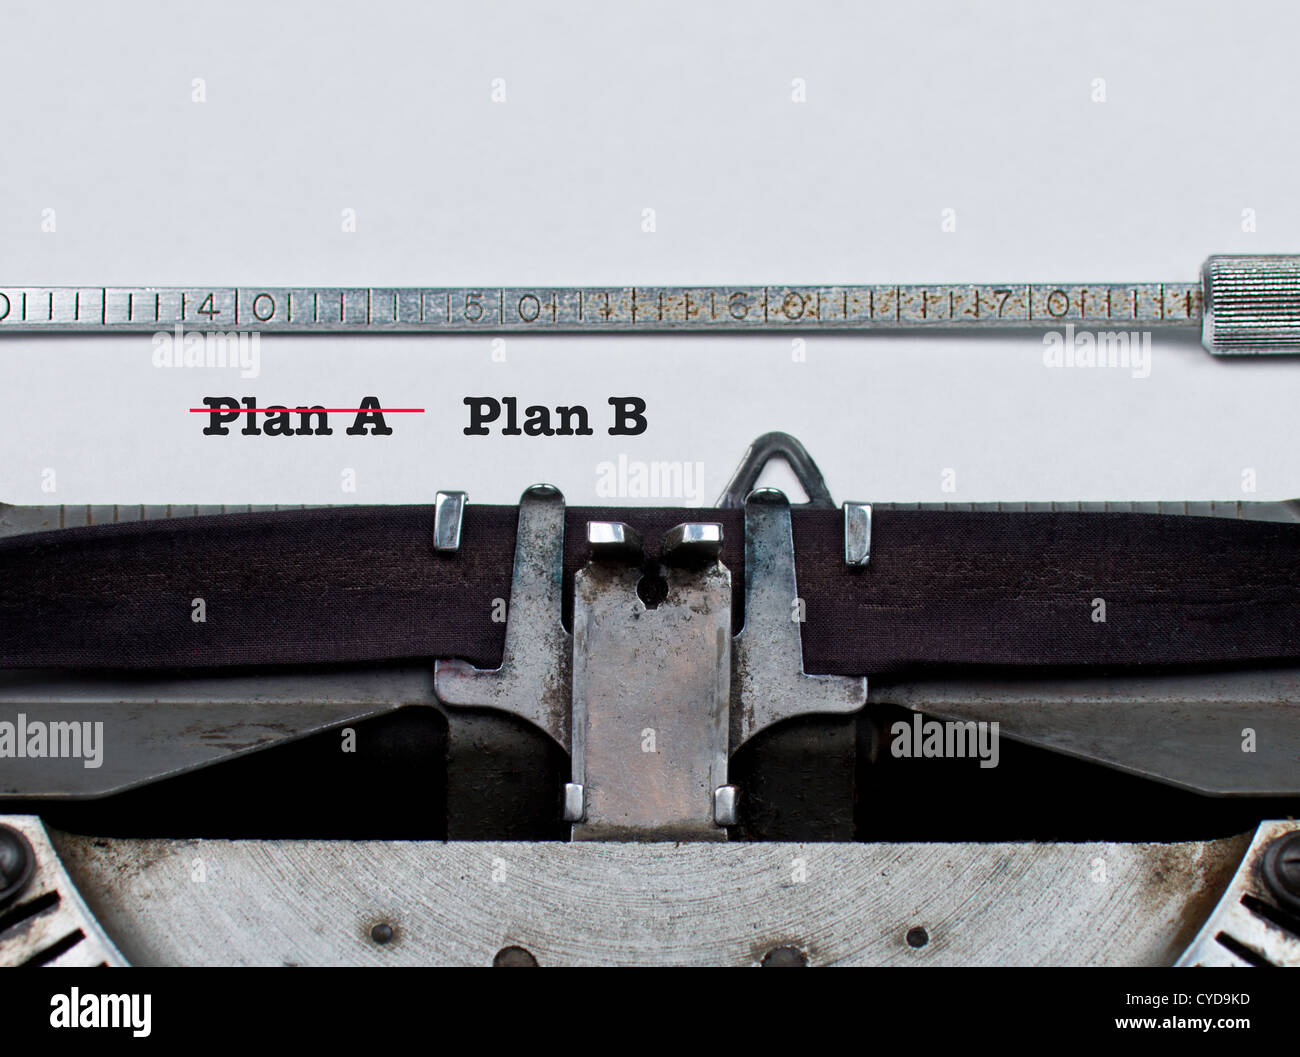 Plan A und Plan B:: Business oder Sport sport Sport Strategiekonzept konzeptionell Stockbild